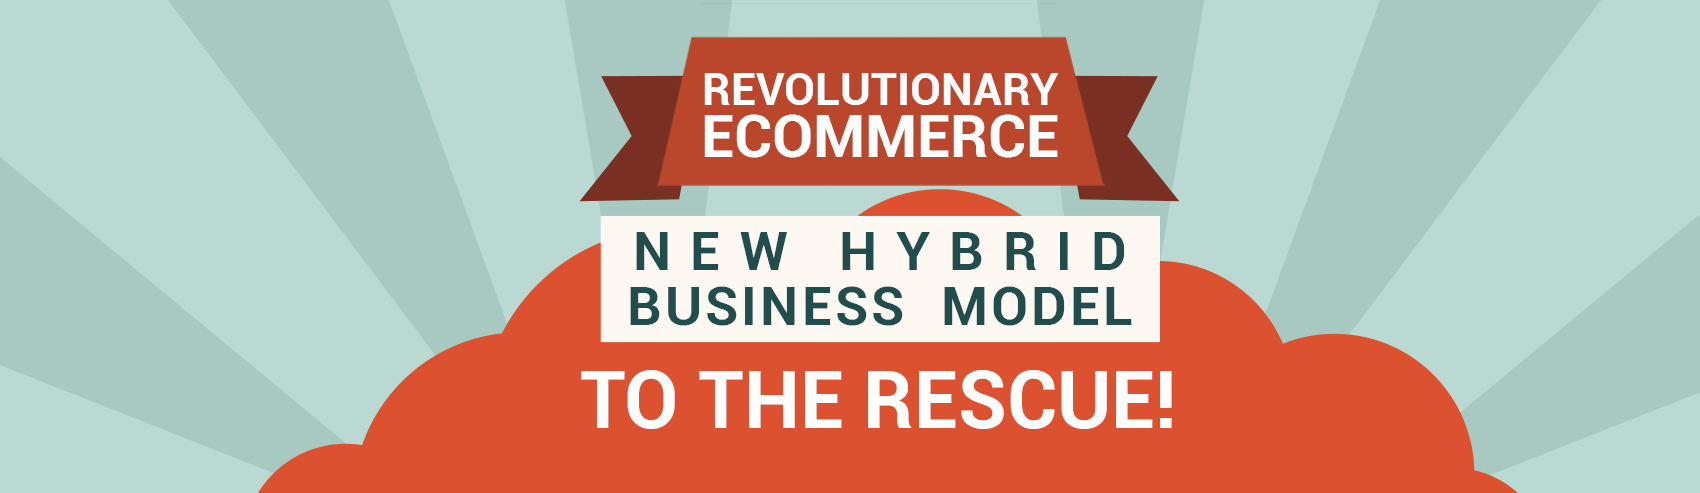 magento ecommerce software as a service belfast northern ireland